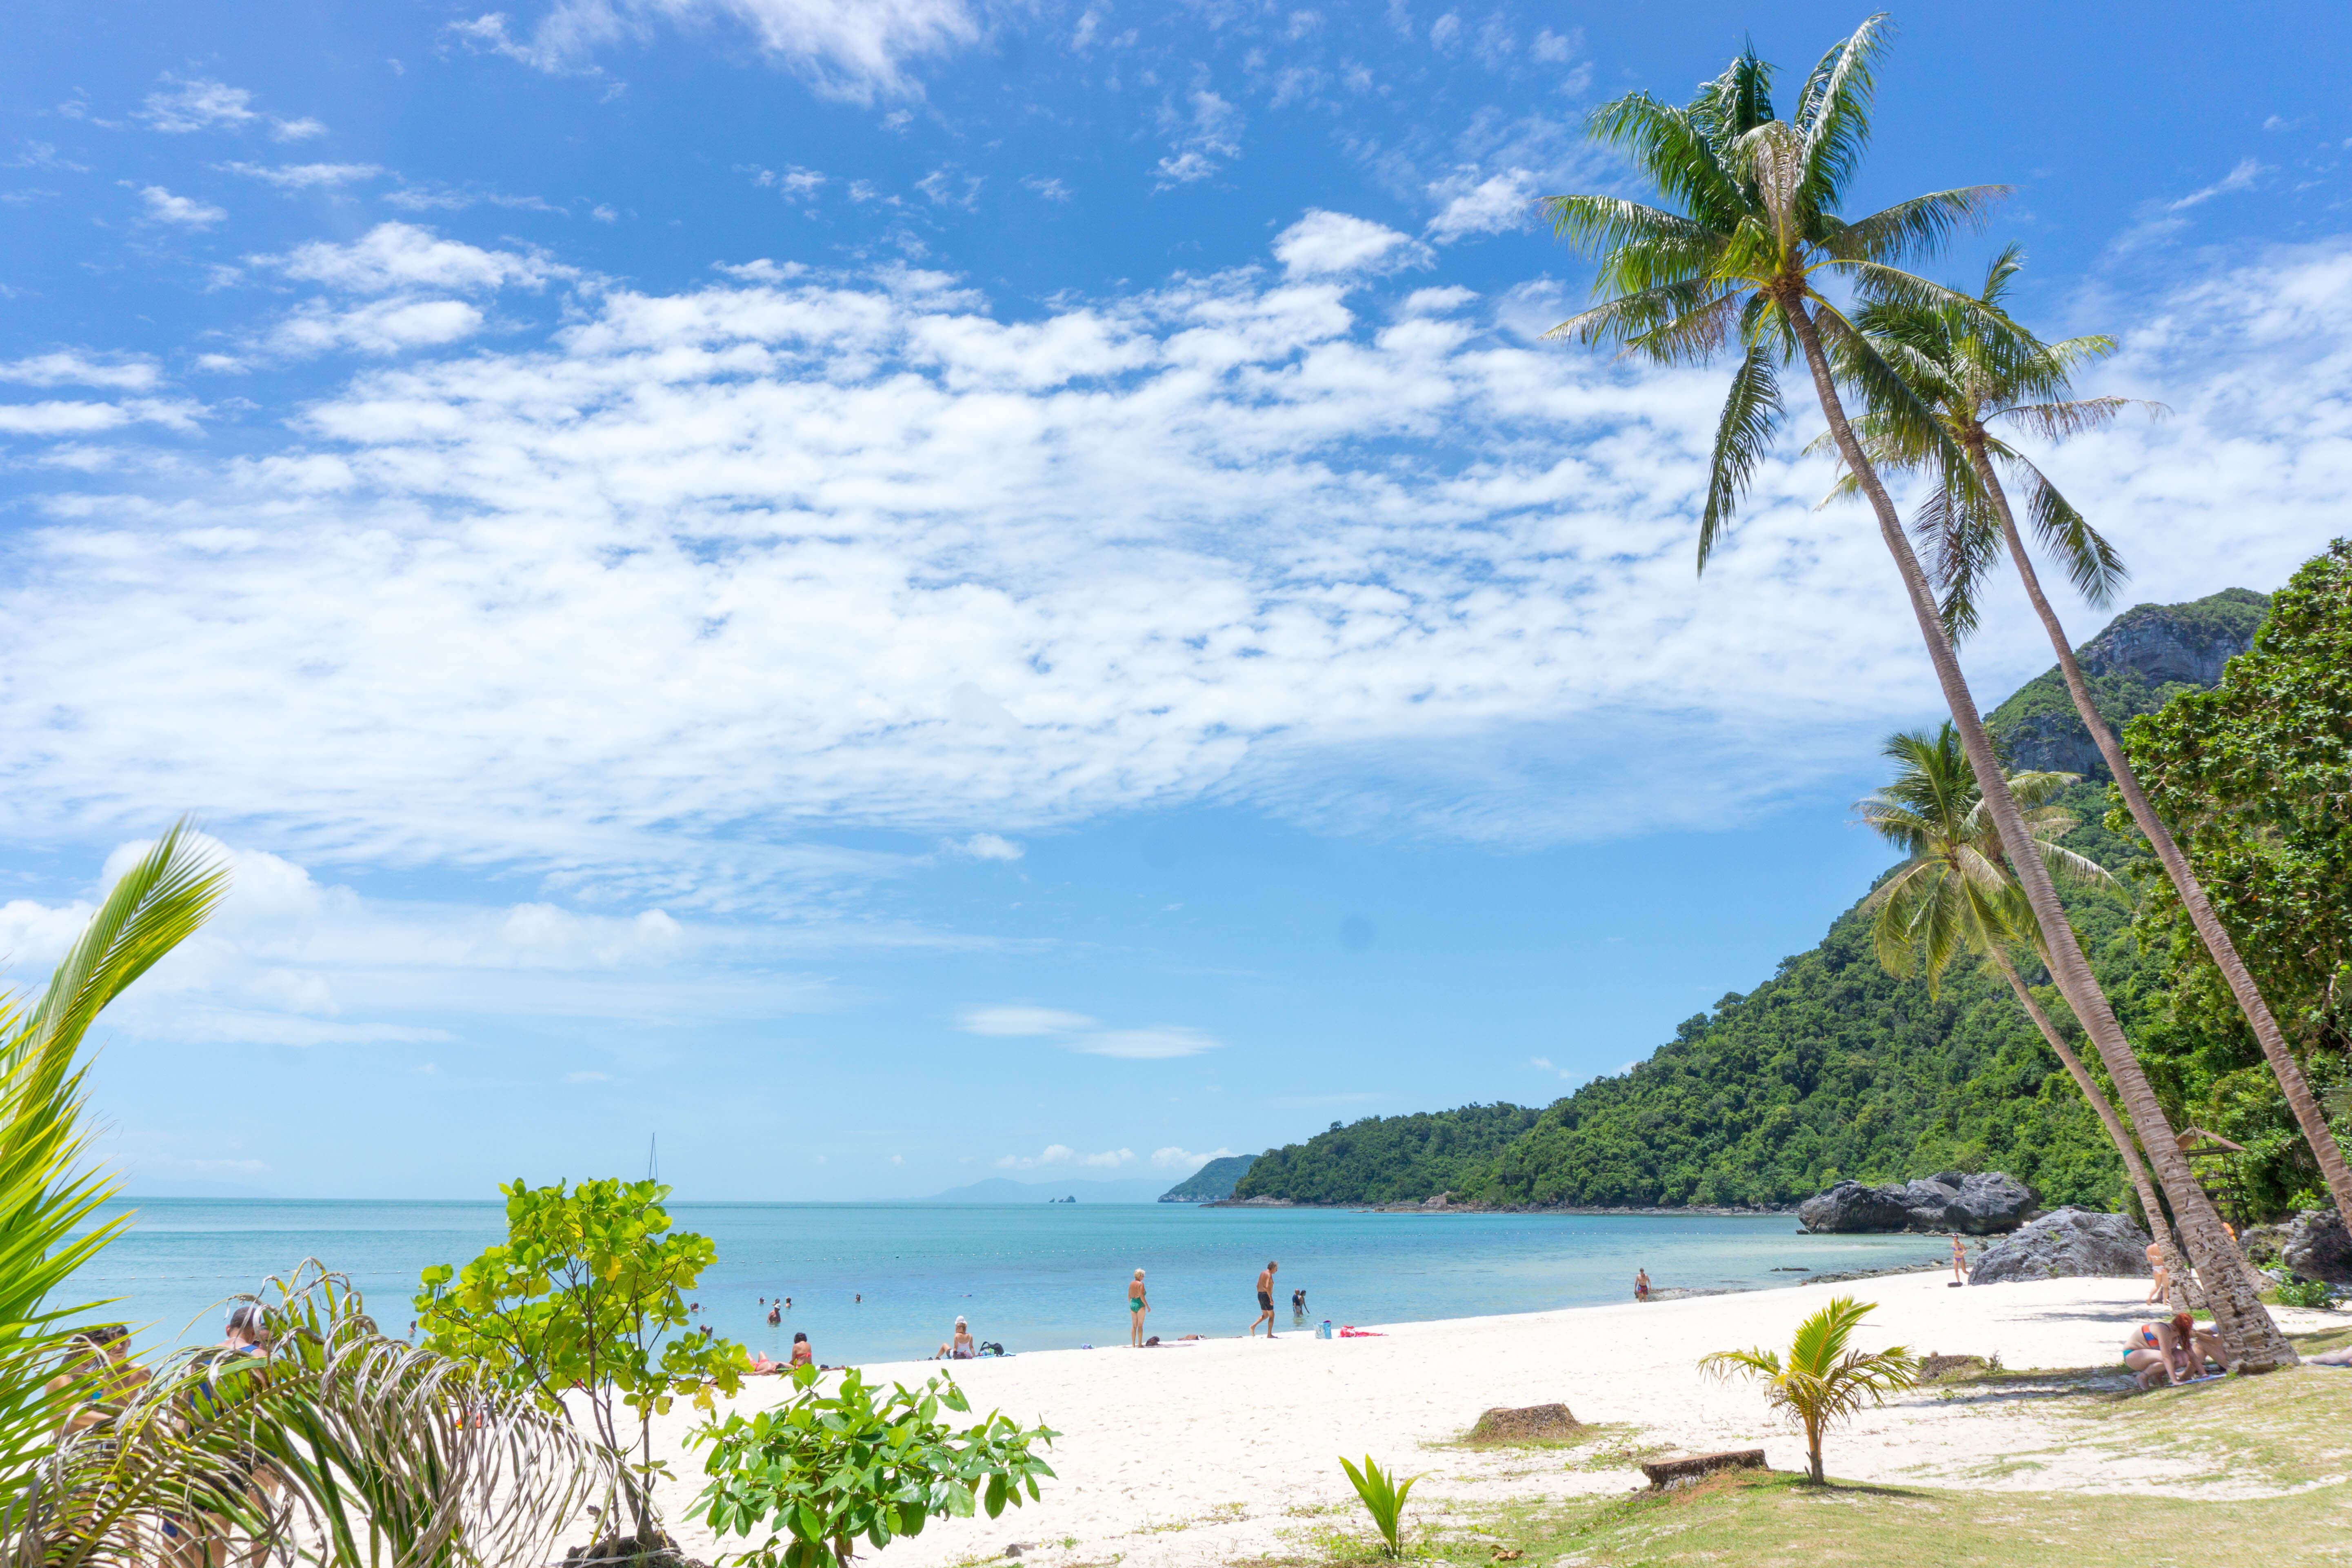 Thailand 2 week itinerary for 1st timers